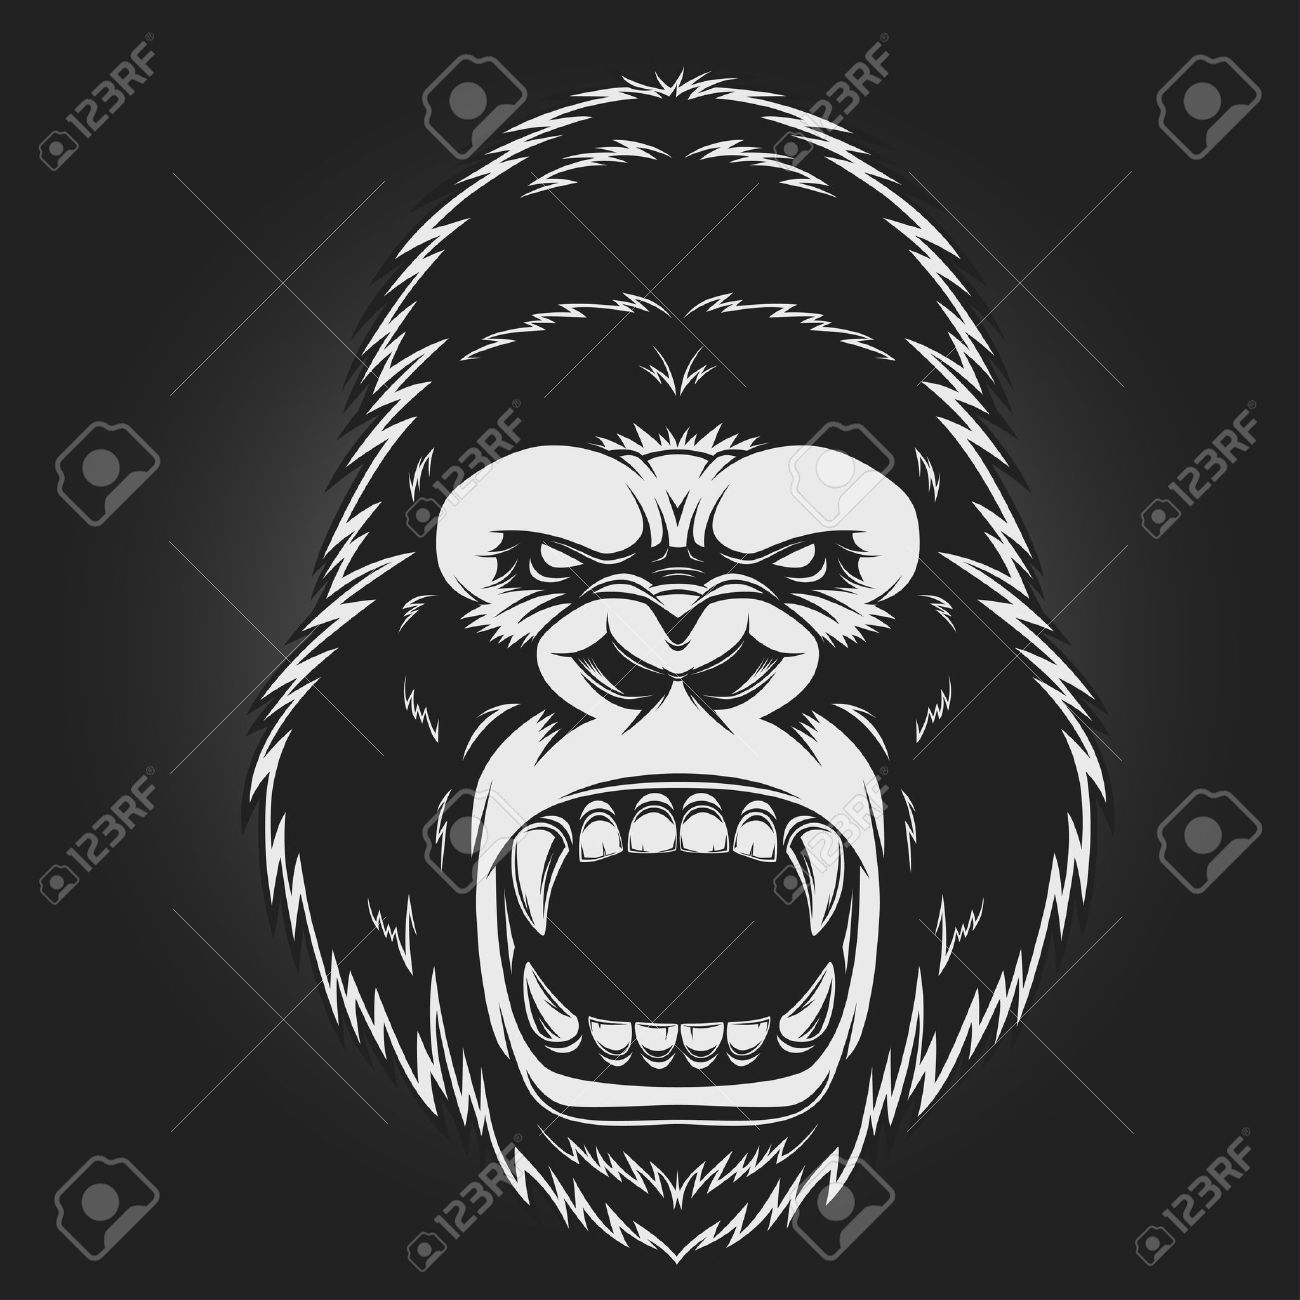 Angry Gorilla Head Vector Illustration Illustration Spon